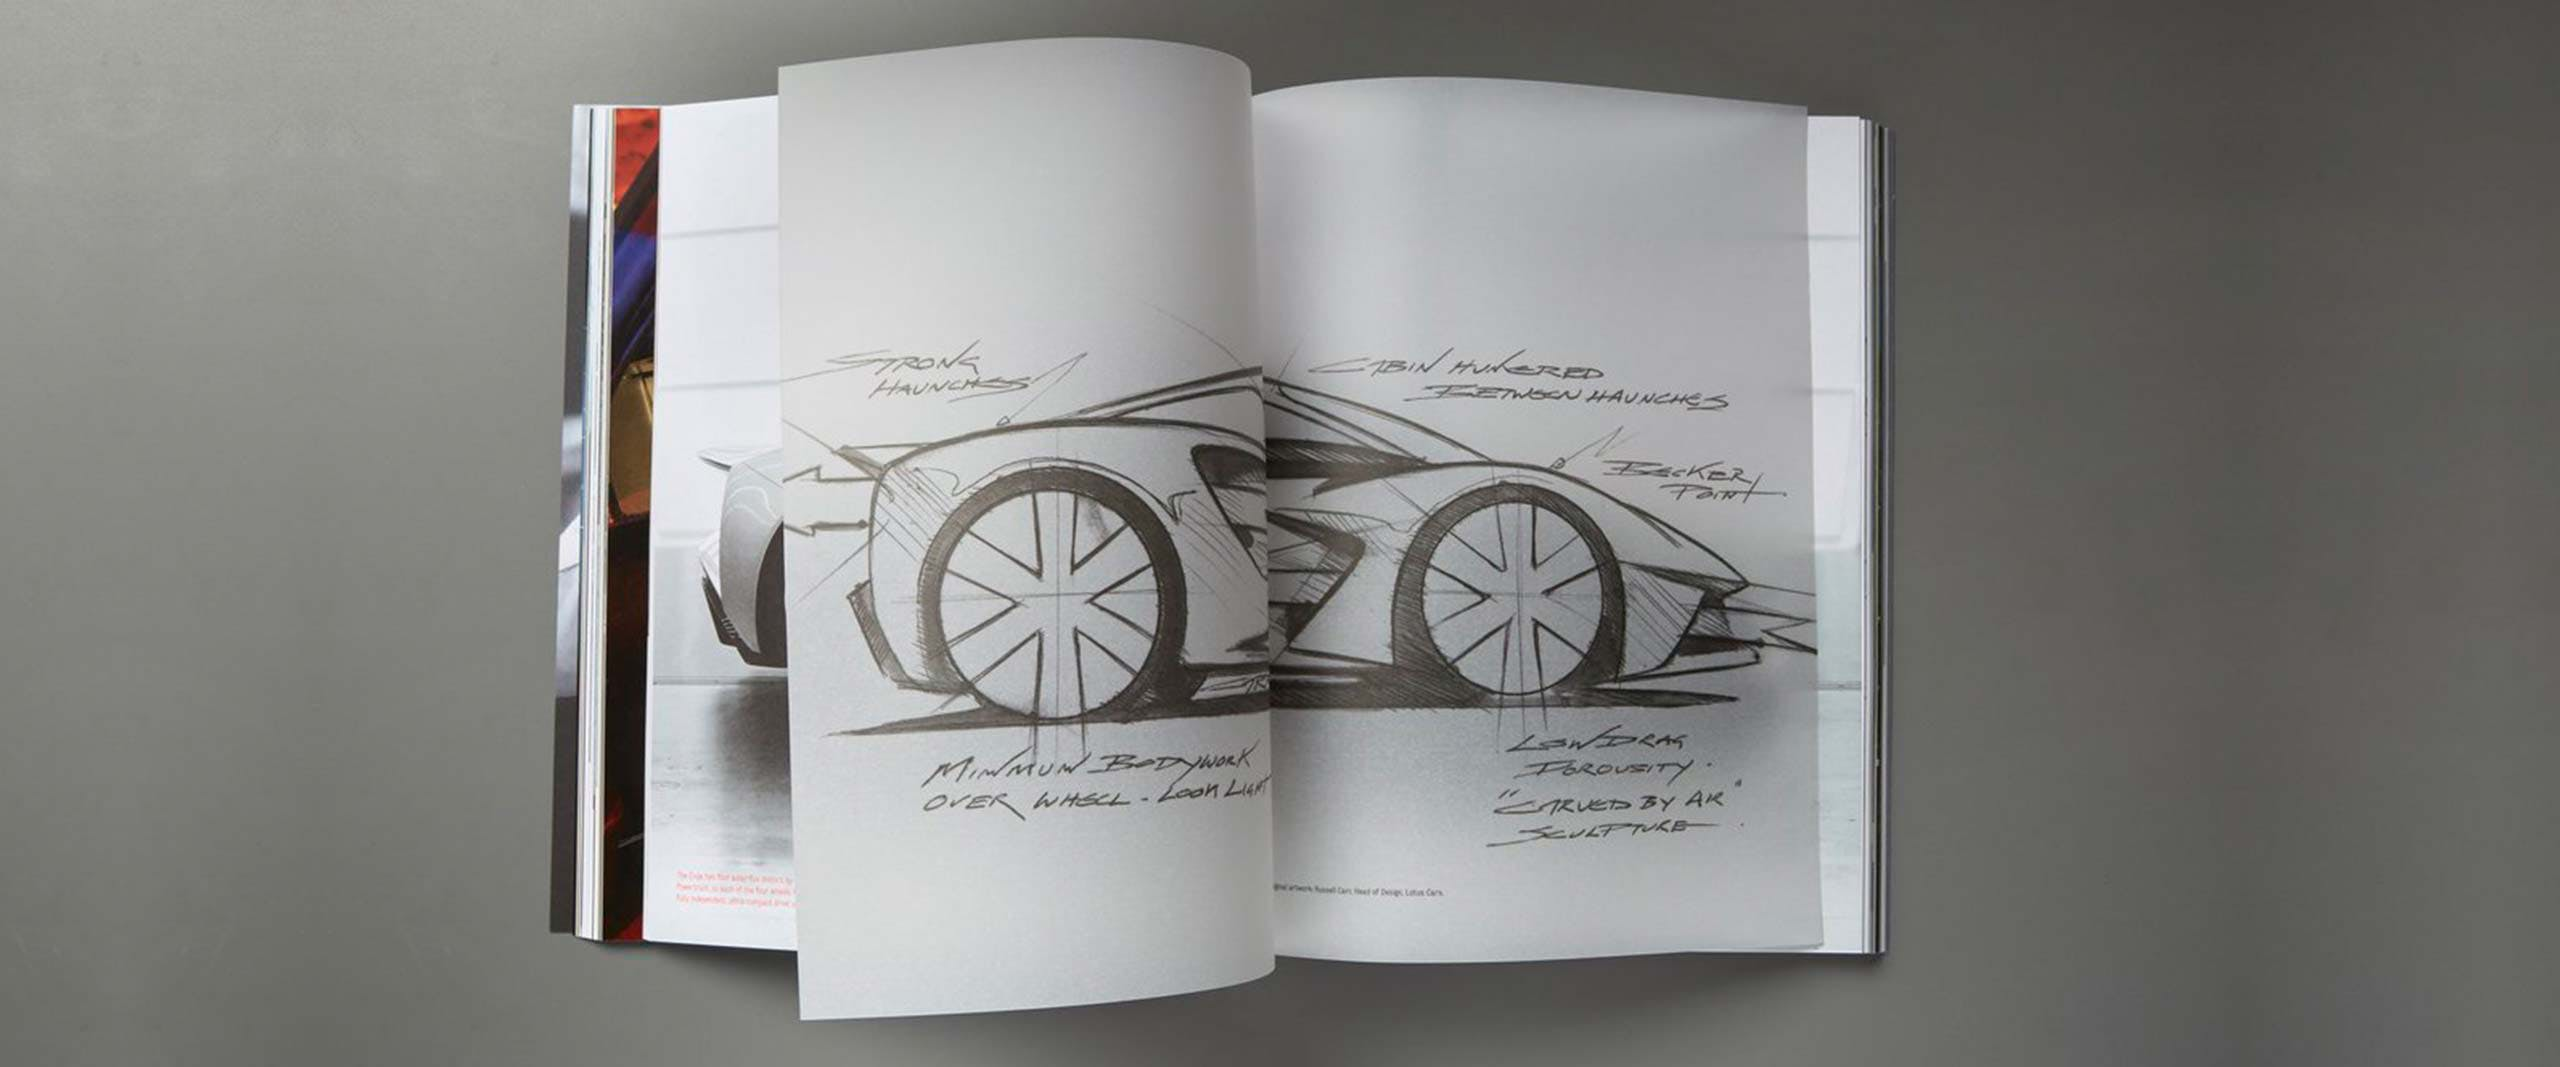 Open book with supercar illustration